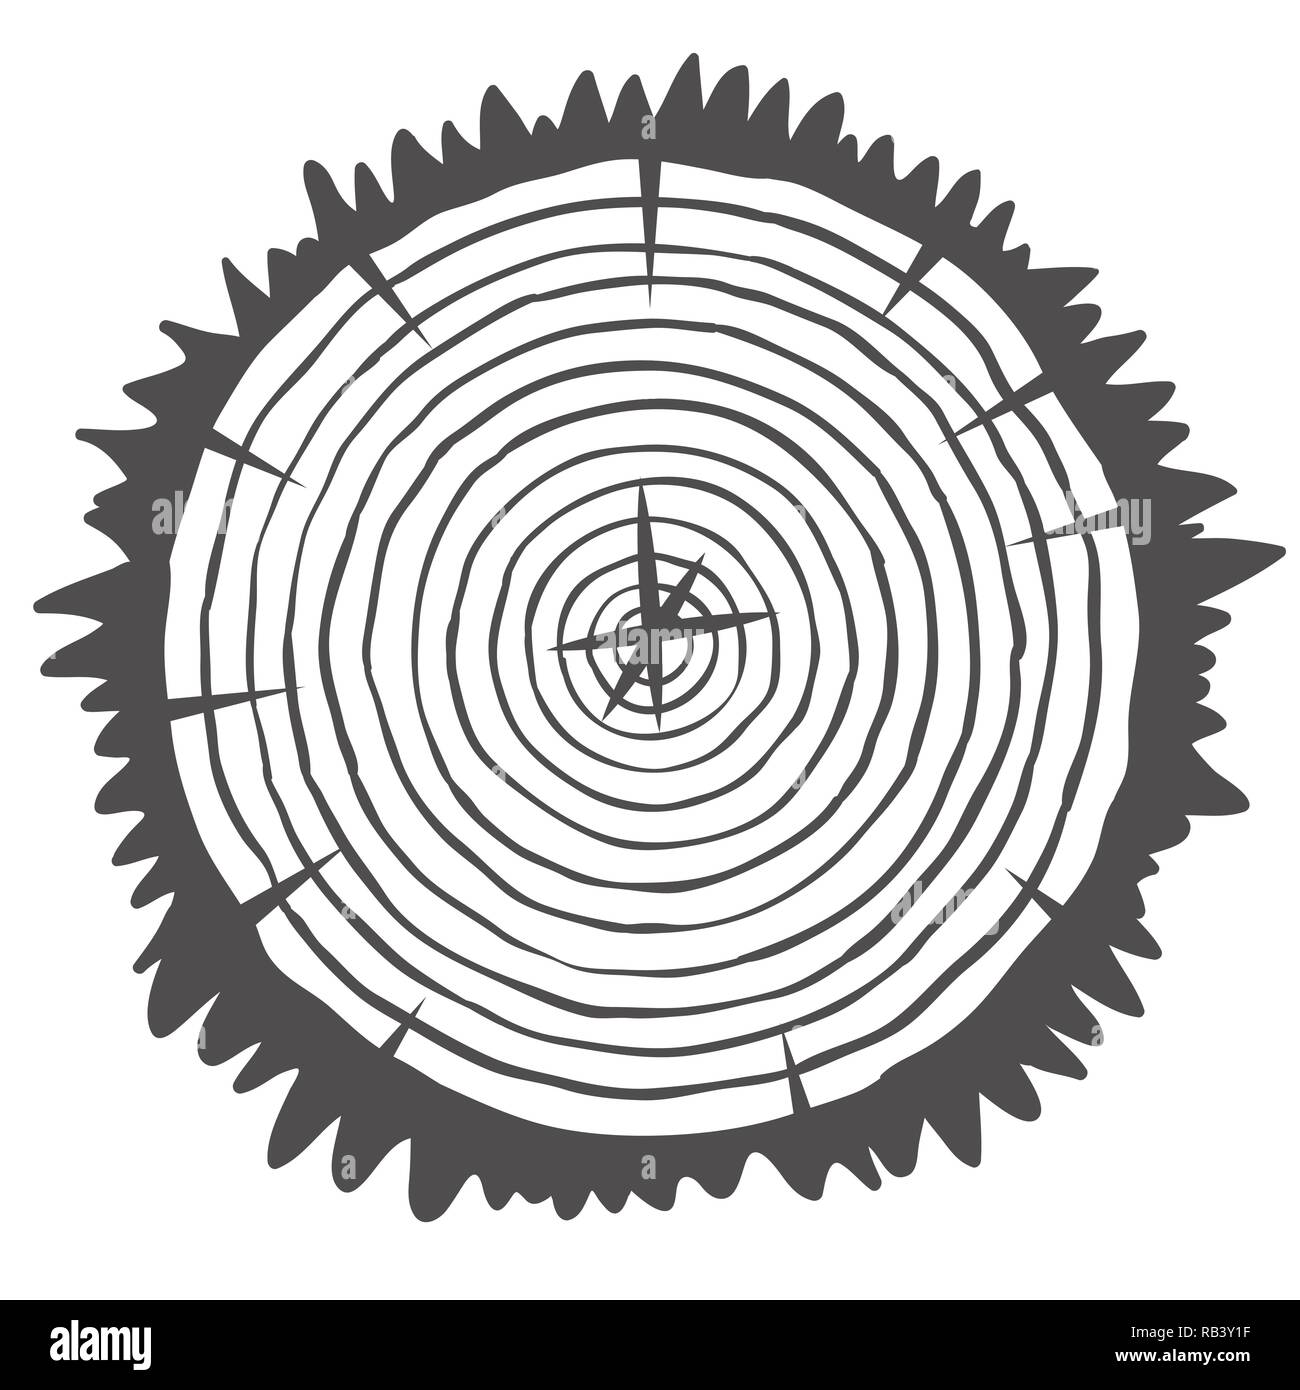 Conceptual background with tree-rings. Vector graphics - Stock Image